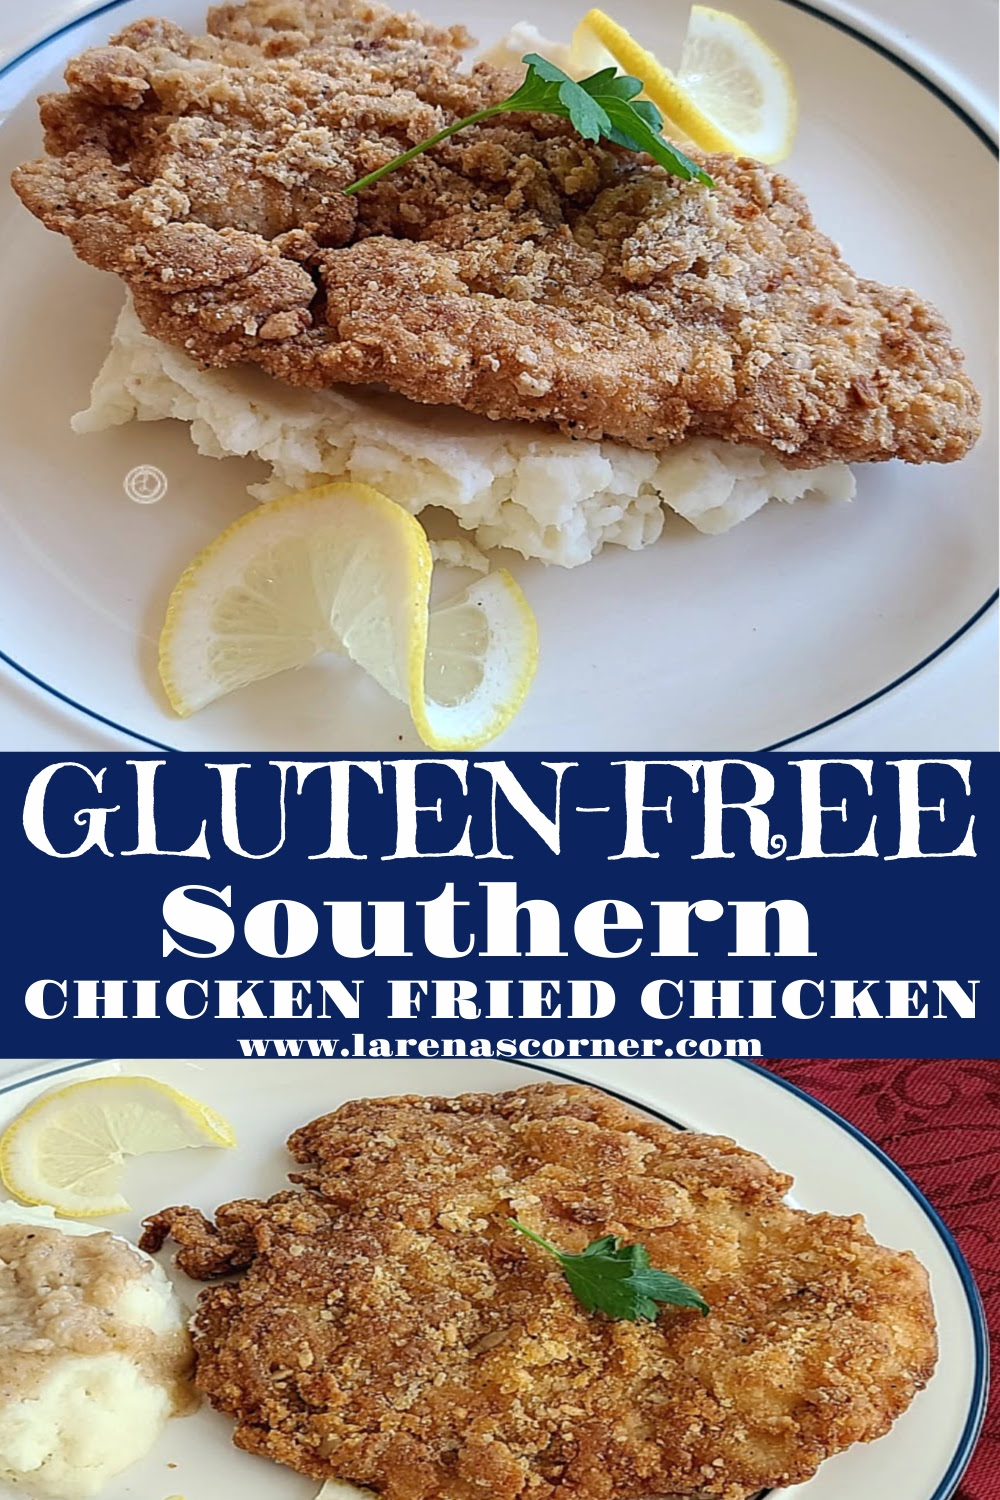 Two pictures of Gluten-Free Southern Chicken-Fried Chicken on 2 plates. One with gravy on potatoes. One on mashed potatoes.